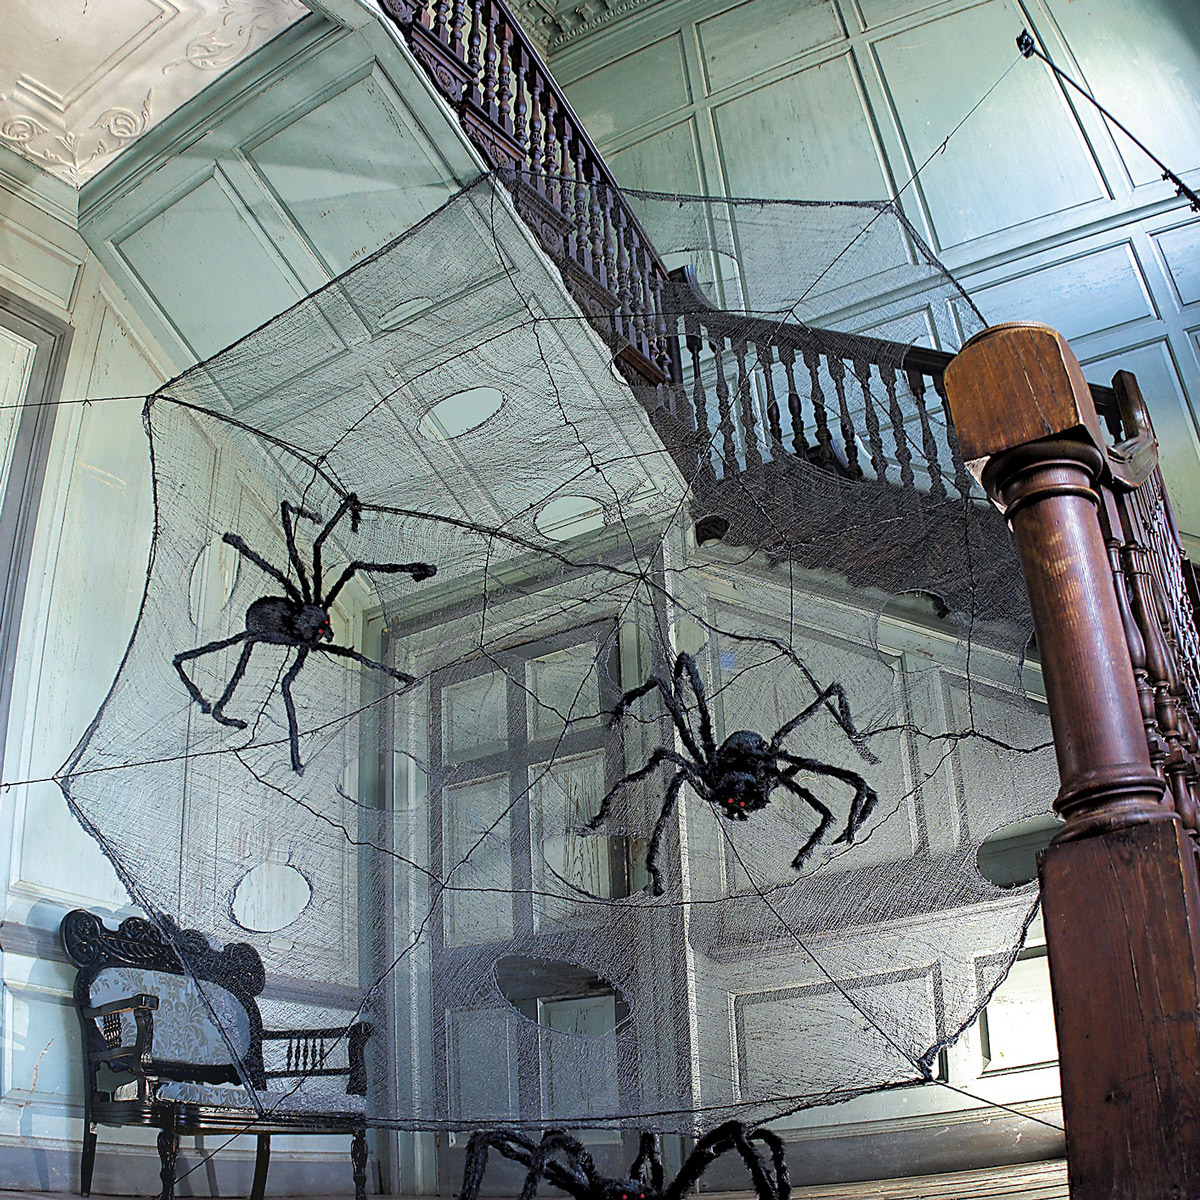 12 Foot Black Spider Web With Giant Spiders The Green Head